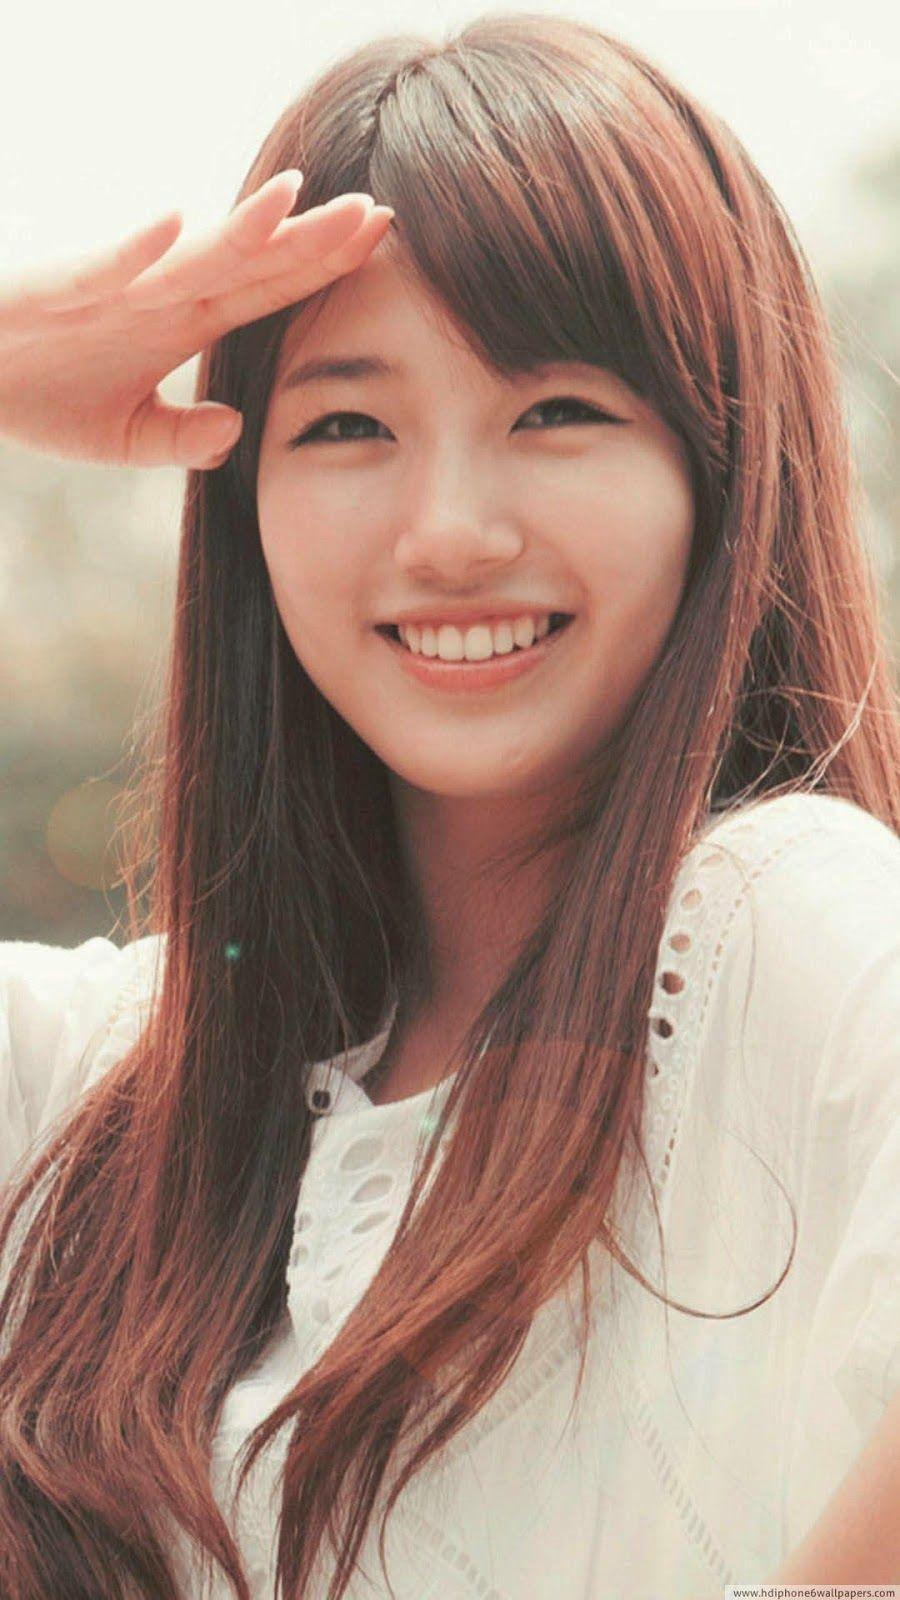 Suzy Miss A iPhone 6 Wallpaper - iPhone 6 Wallpapers HD